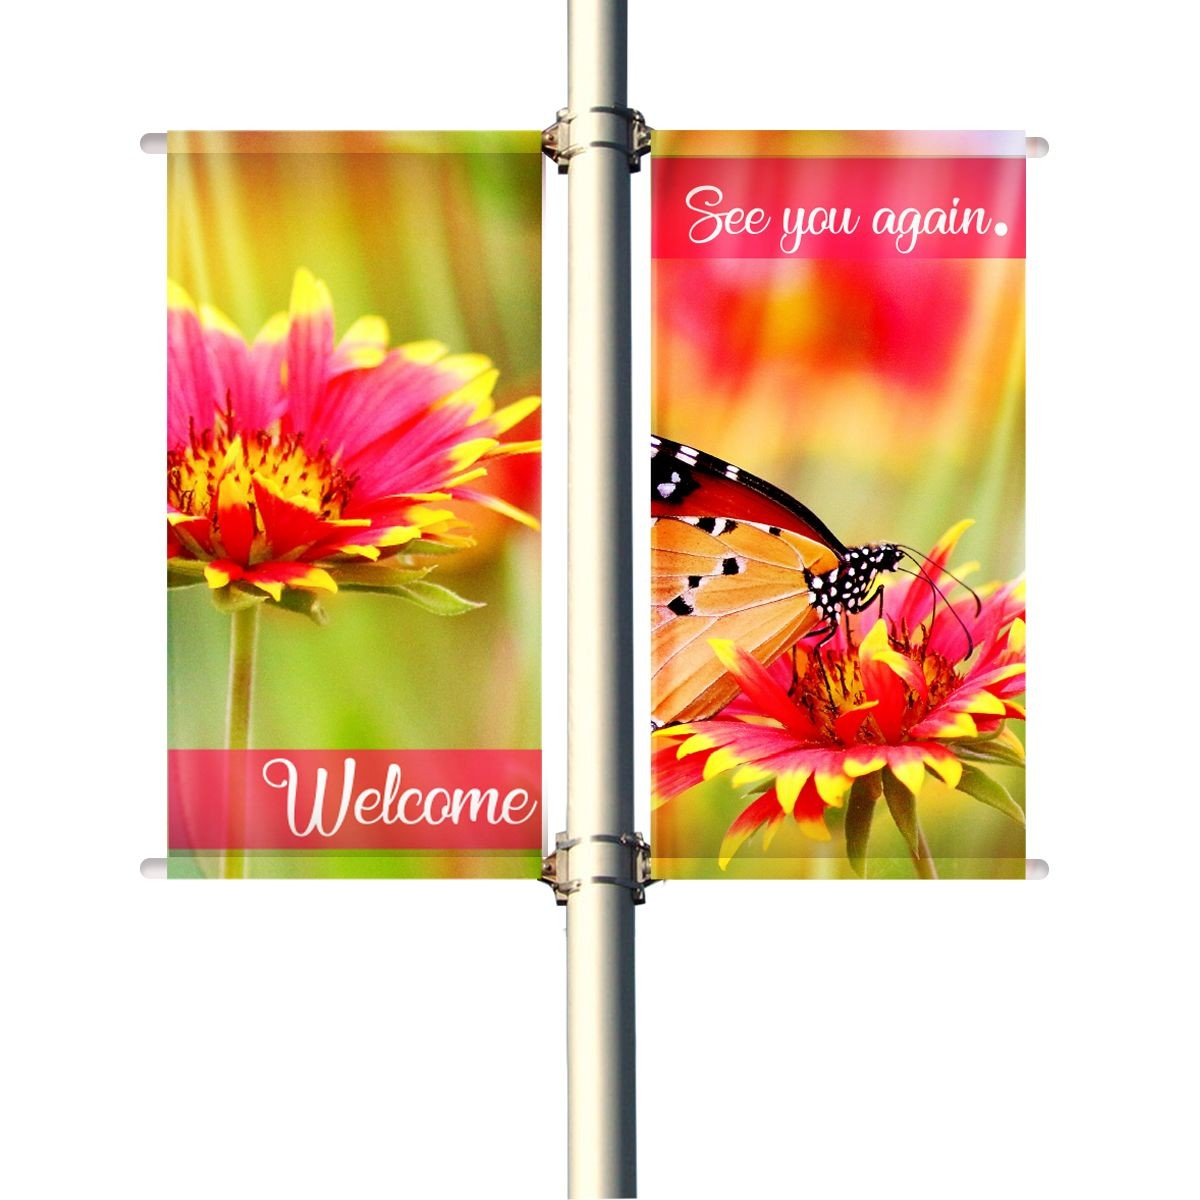 18 Single Set Pole Banners